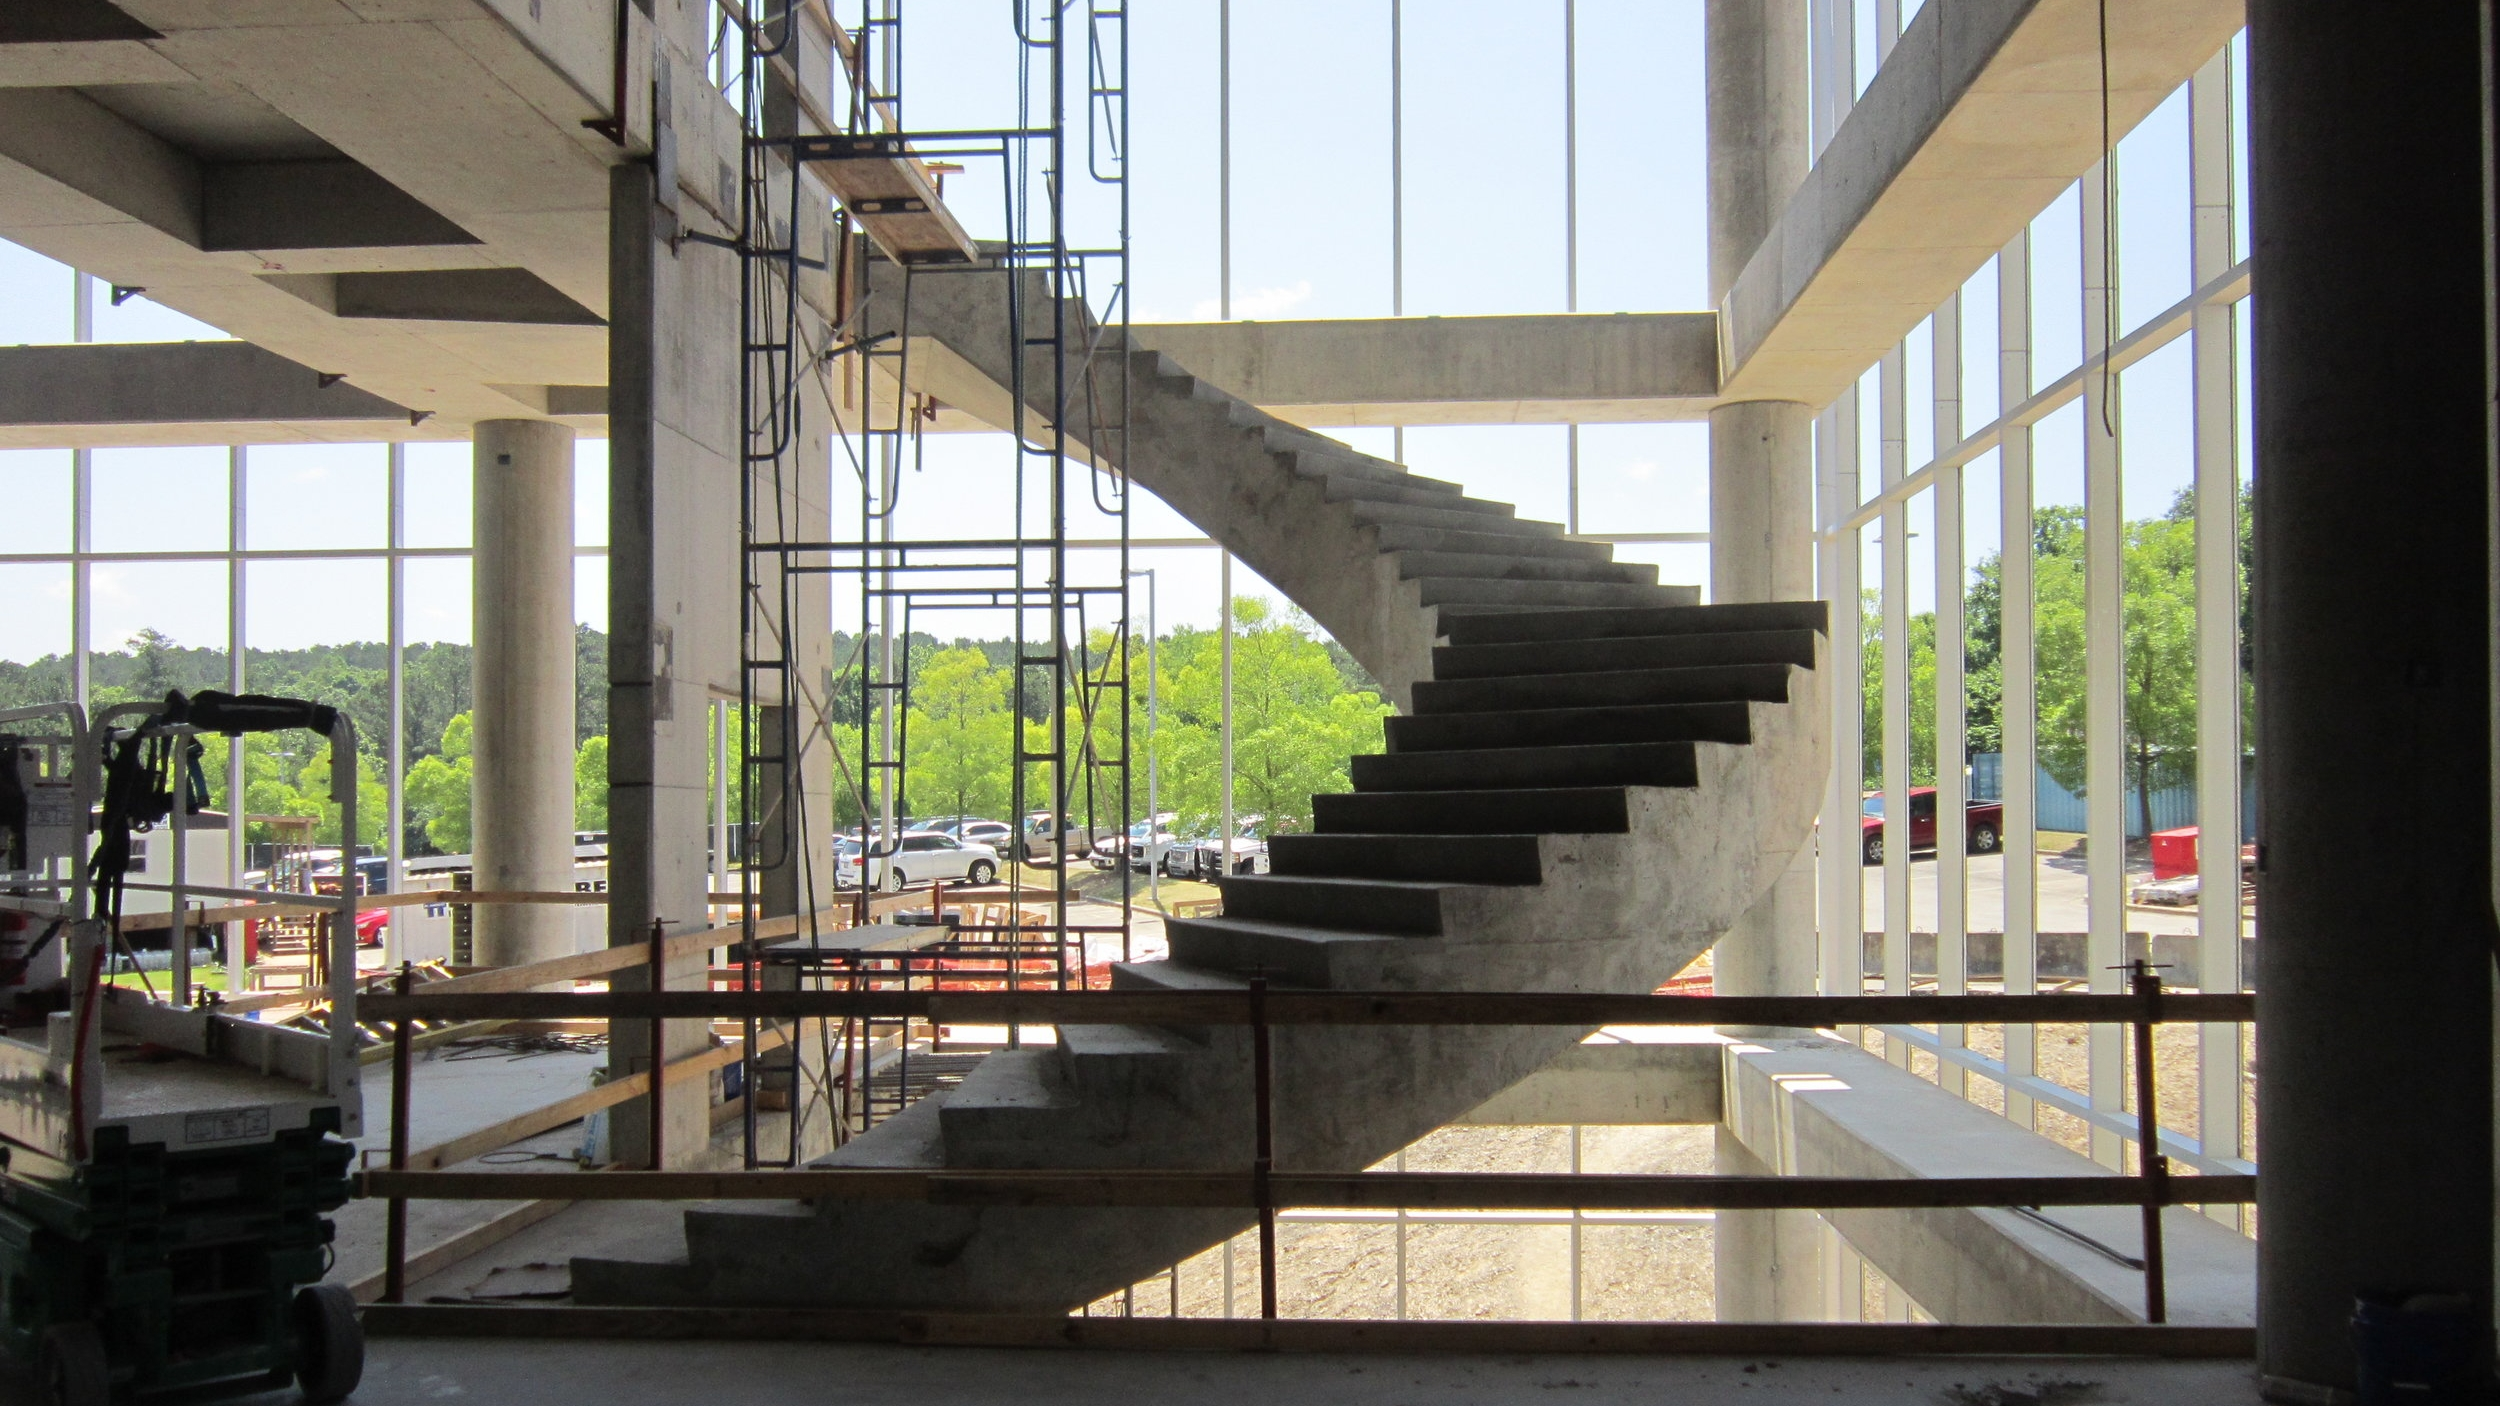 Stairs from second to third floor complete.